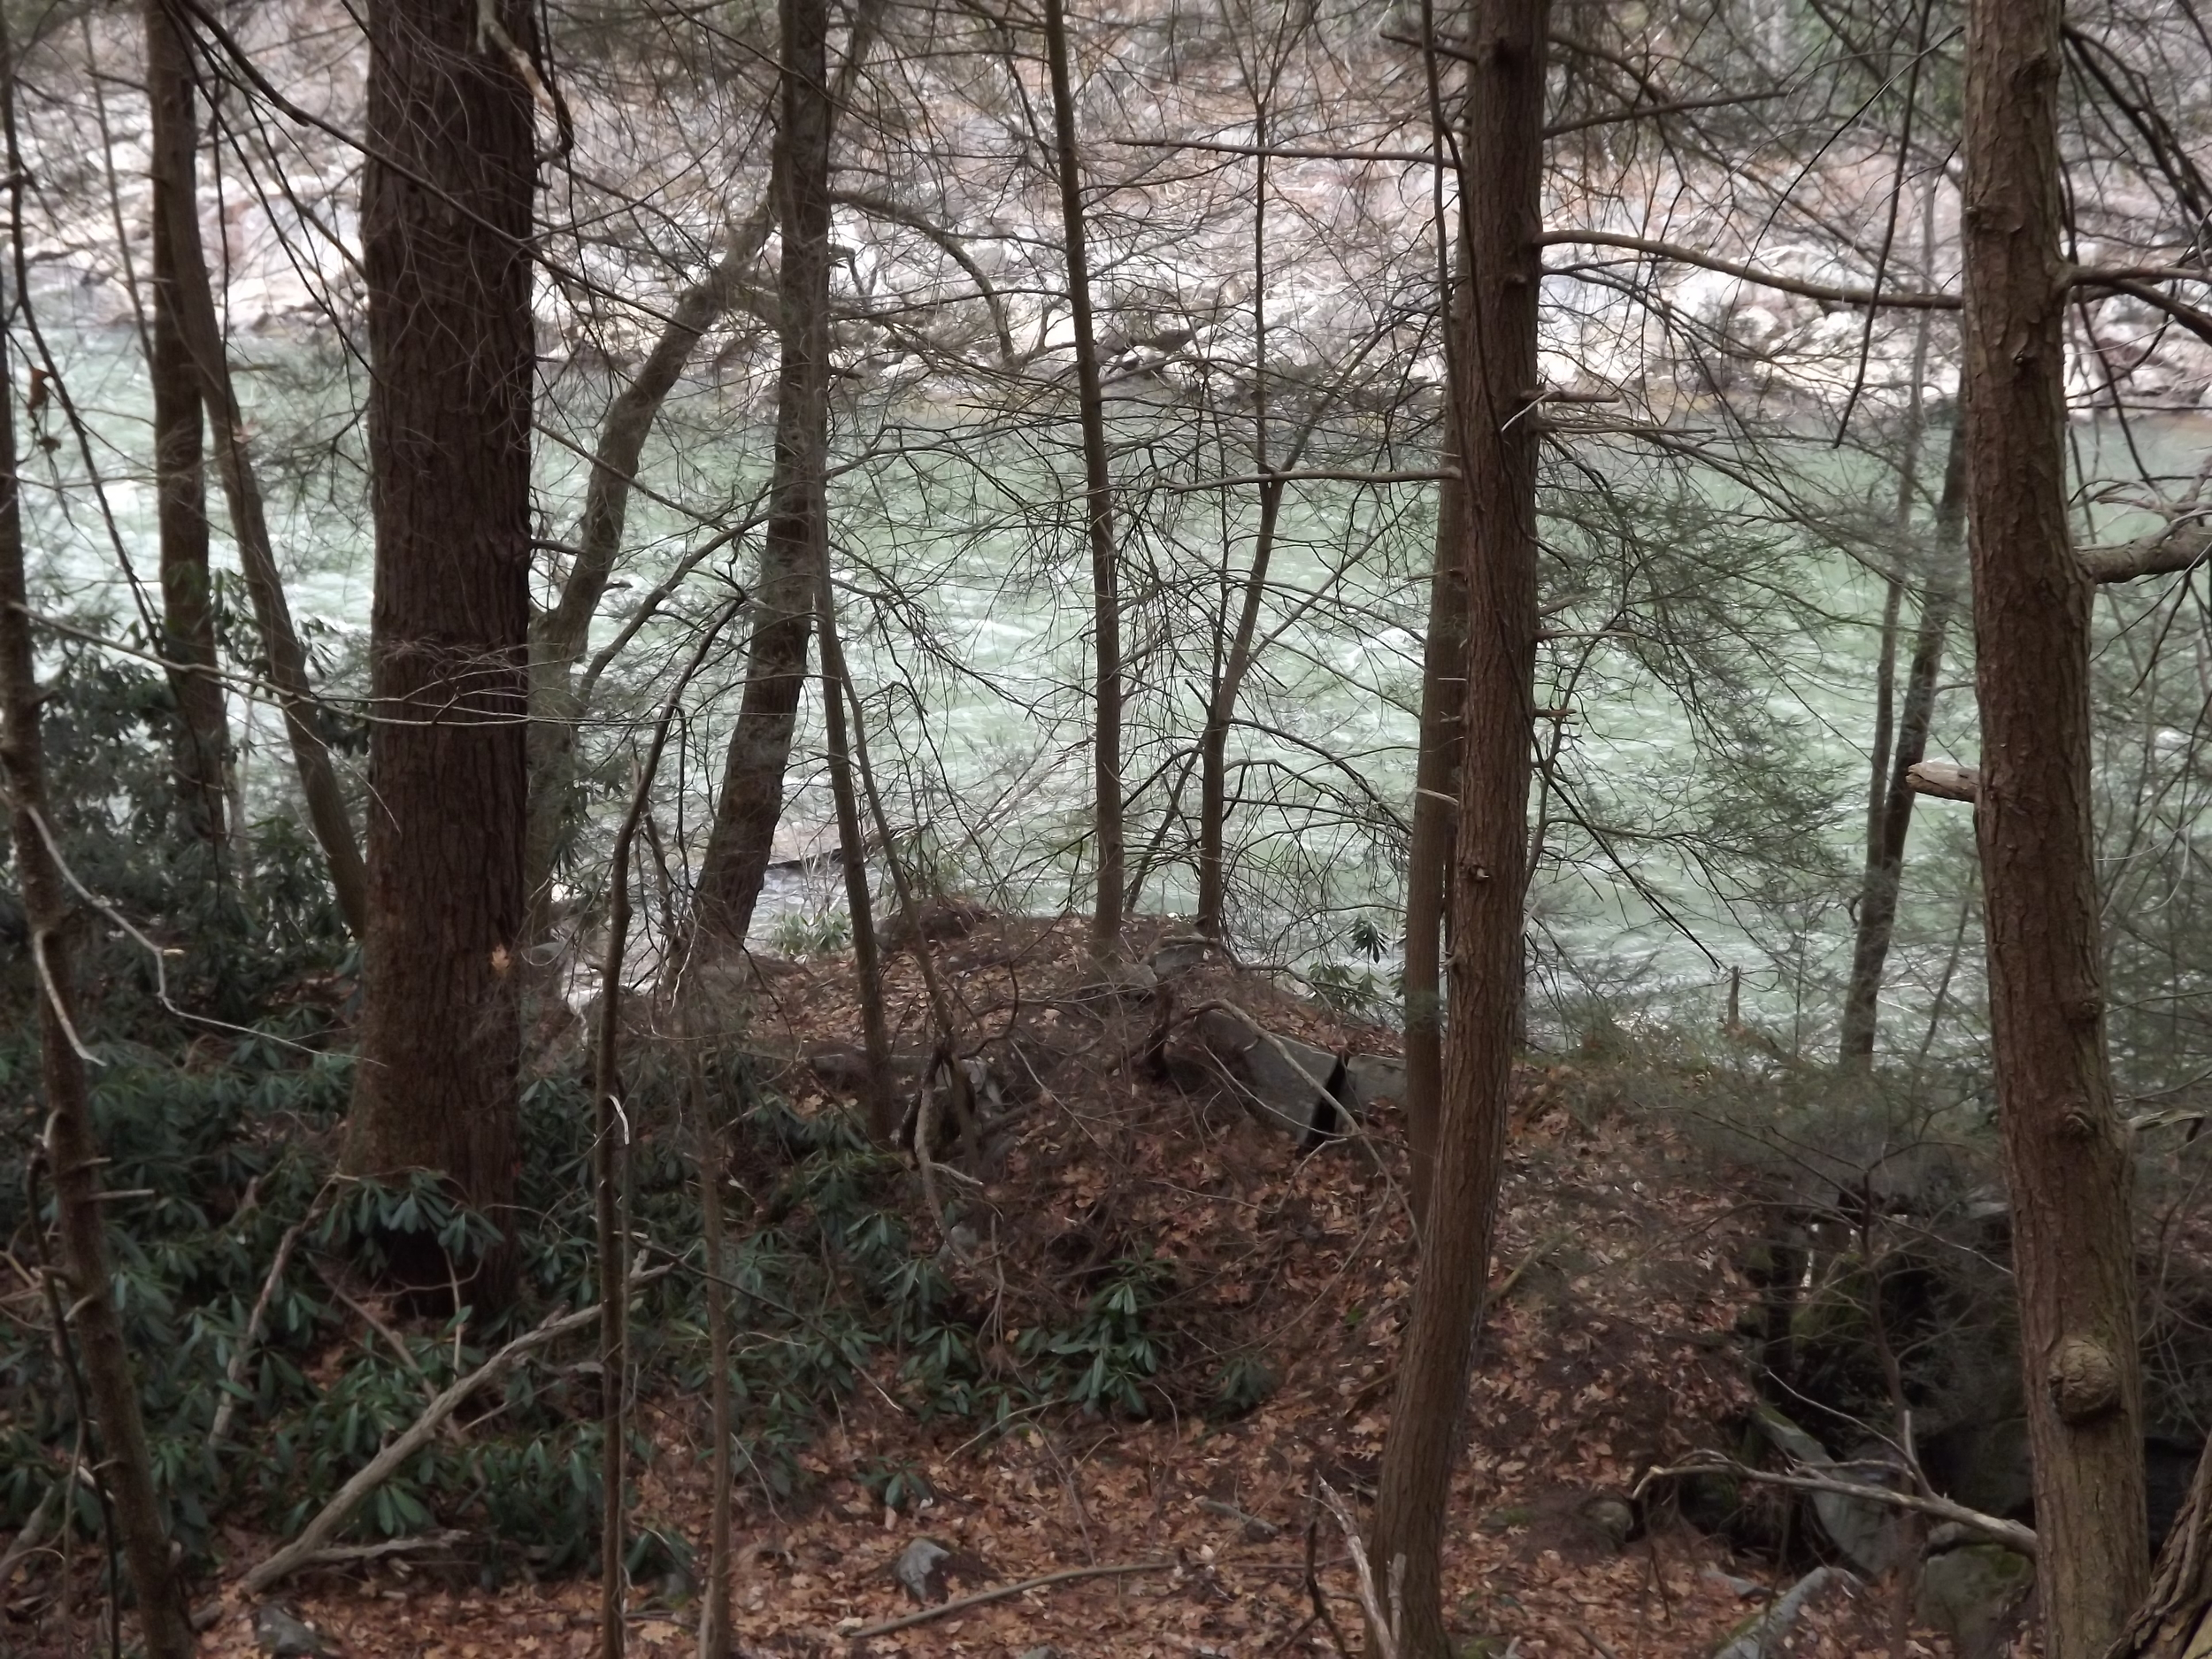 I was hoping the Ferncliff trail would head back down to the river's edge, but after leaving the main falls, it stayed on top of the cliffs for the rest of the way. At one point, the river was visible through the trees and rhododendron thickets so I snapped a few pics.